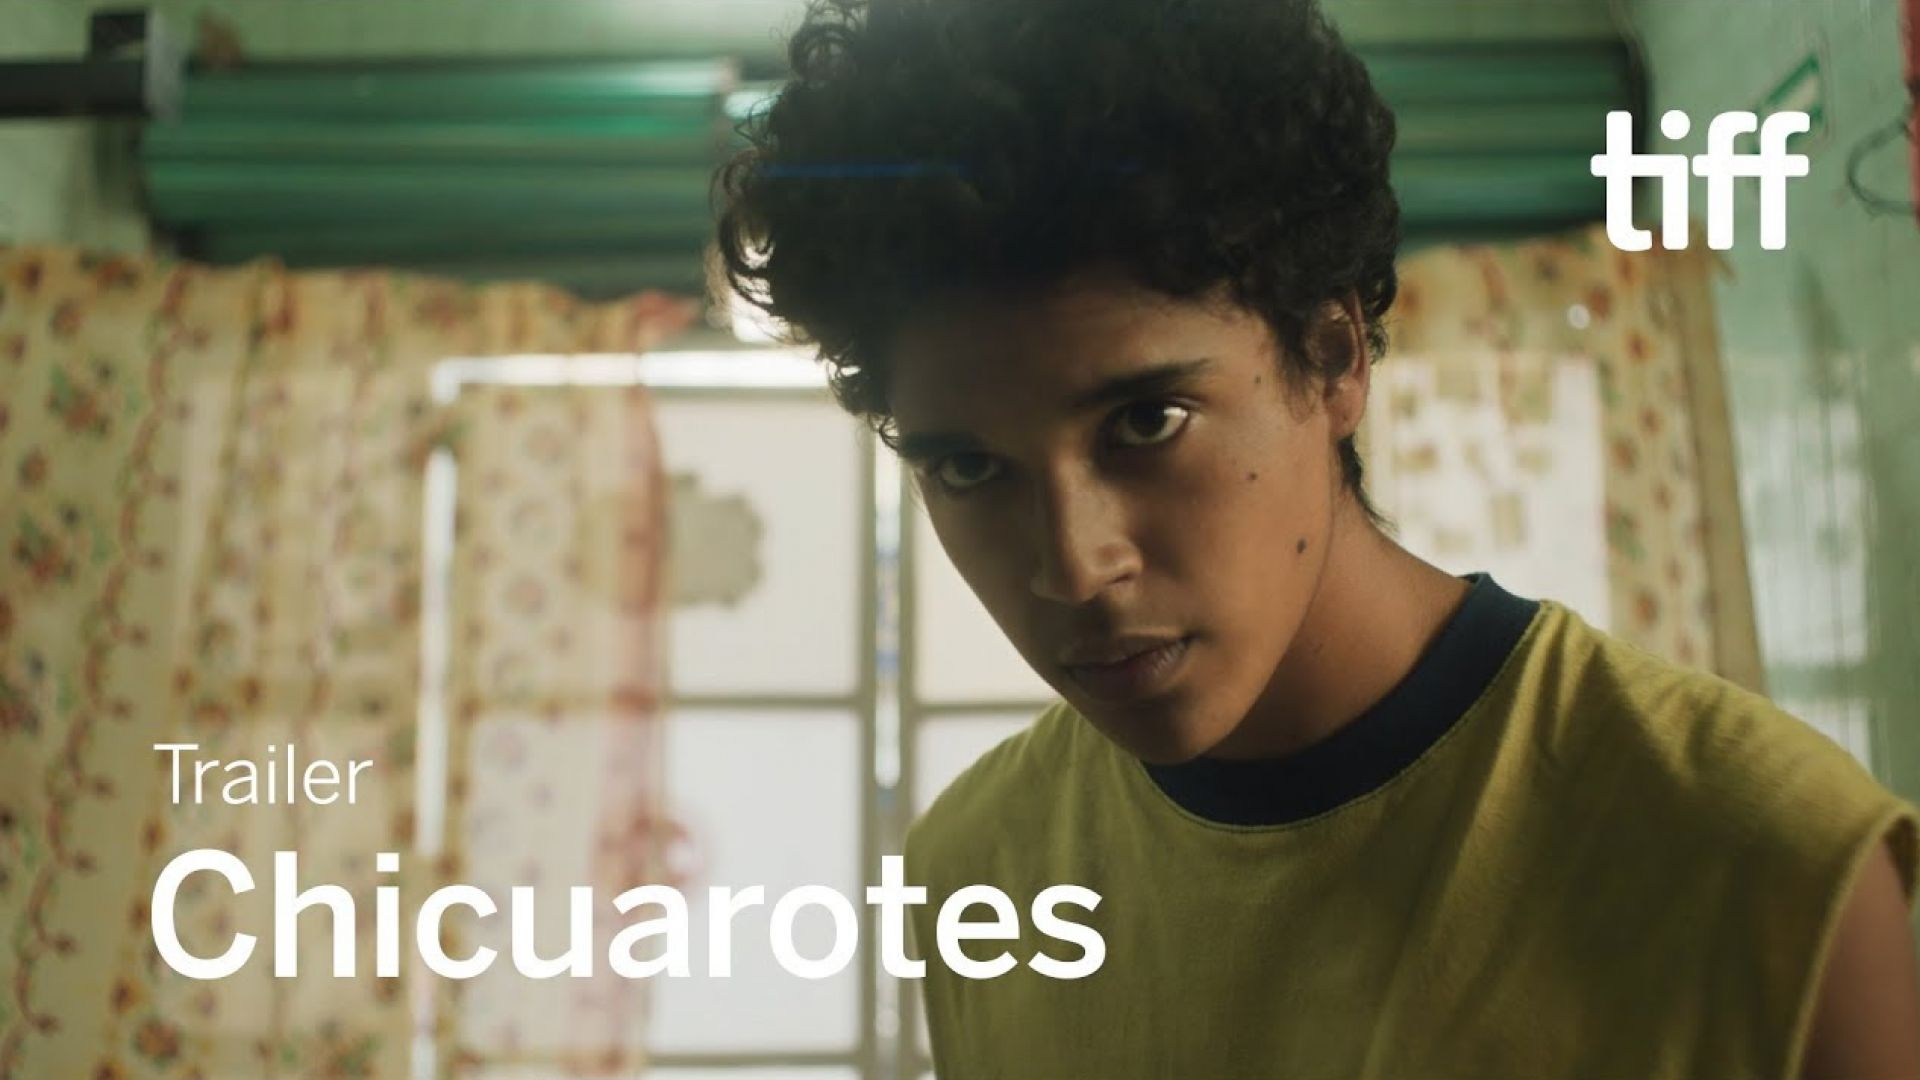 'Chicuarotes' trailer